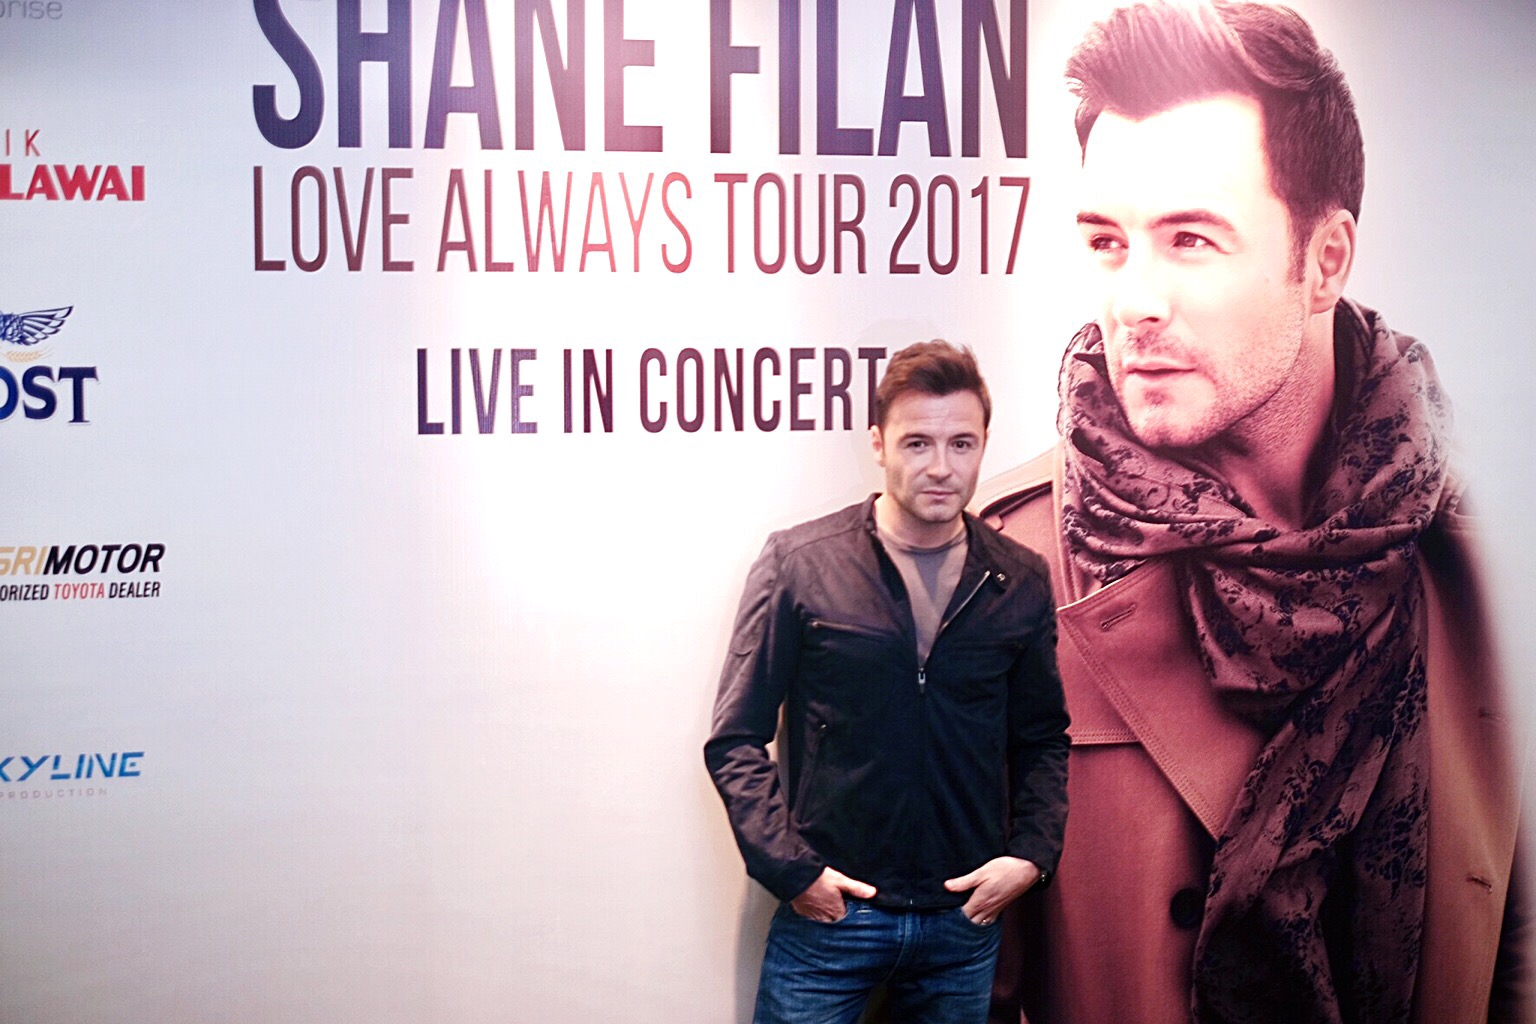 Shane Filan wowed Surabaya at his 'Love Always Tour' Press